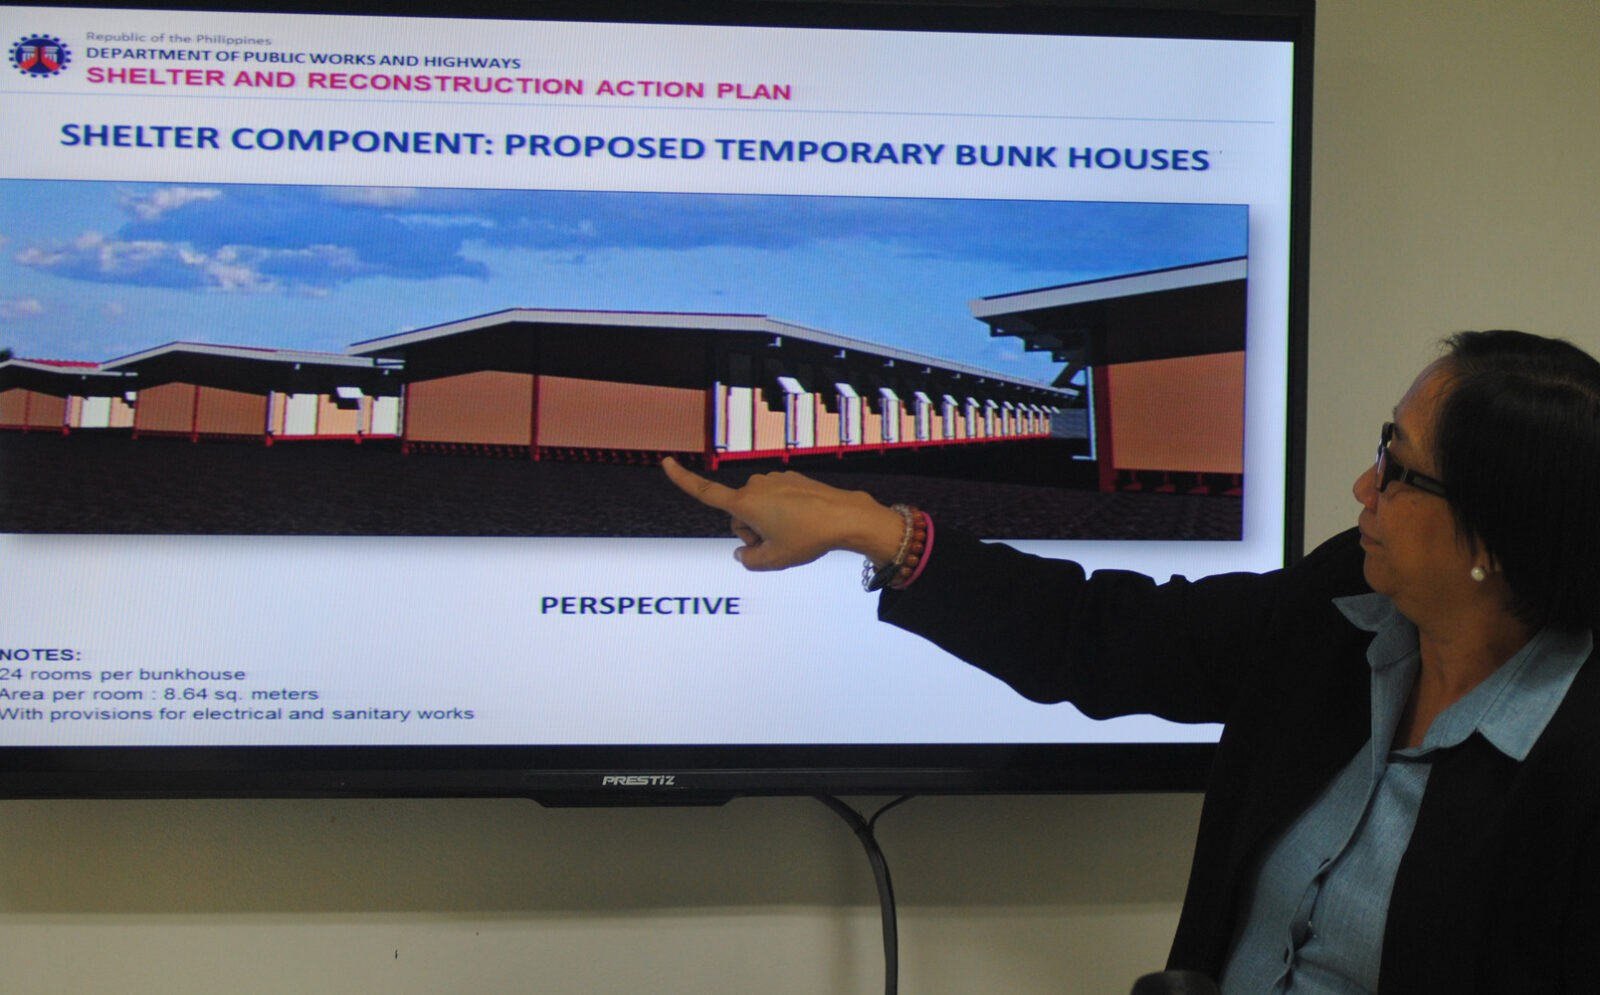 Department of public work and Highways (DPWH) OIC-Director Beth Pilorin shows the scale model for the construction of temporary shelter for families affected by super typoon 'Yolanda' in Samar and Leyte on Tuesday (November 26, 2013) at the DWPH head office in Port Area, Manila. DPWH Secretary Rogelio Singson said works are on-going for the construction of bunkhouse units in 4 sites in Tacloban City, Palo (Leyte), and Basey and Marabut towns in Samar. (MNS photo)